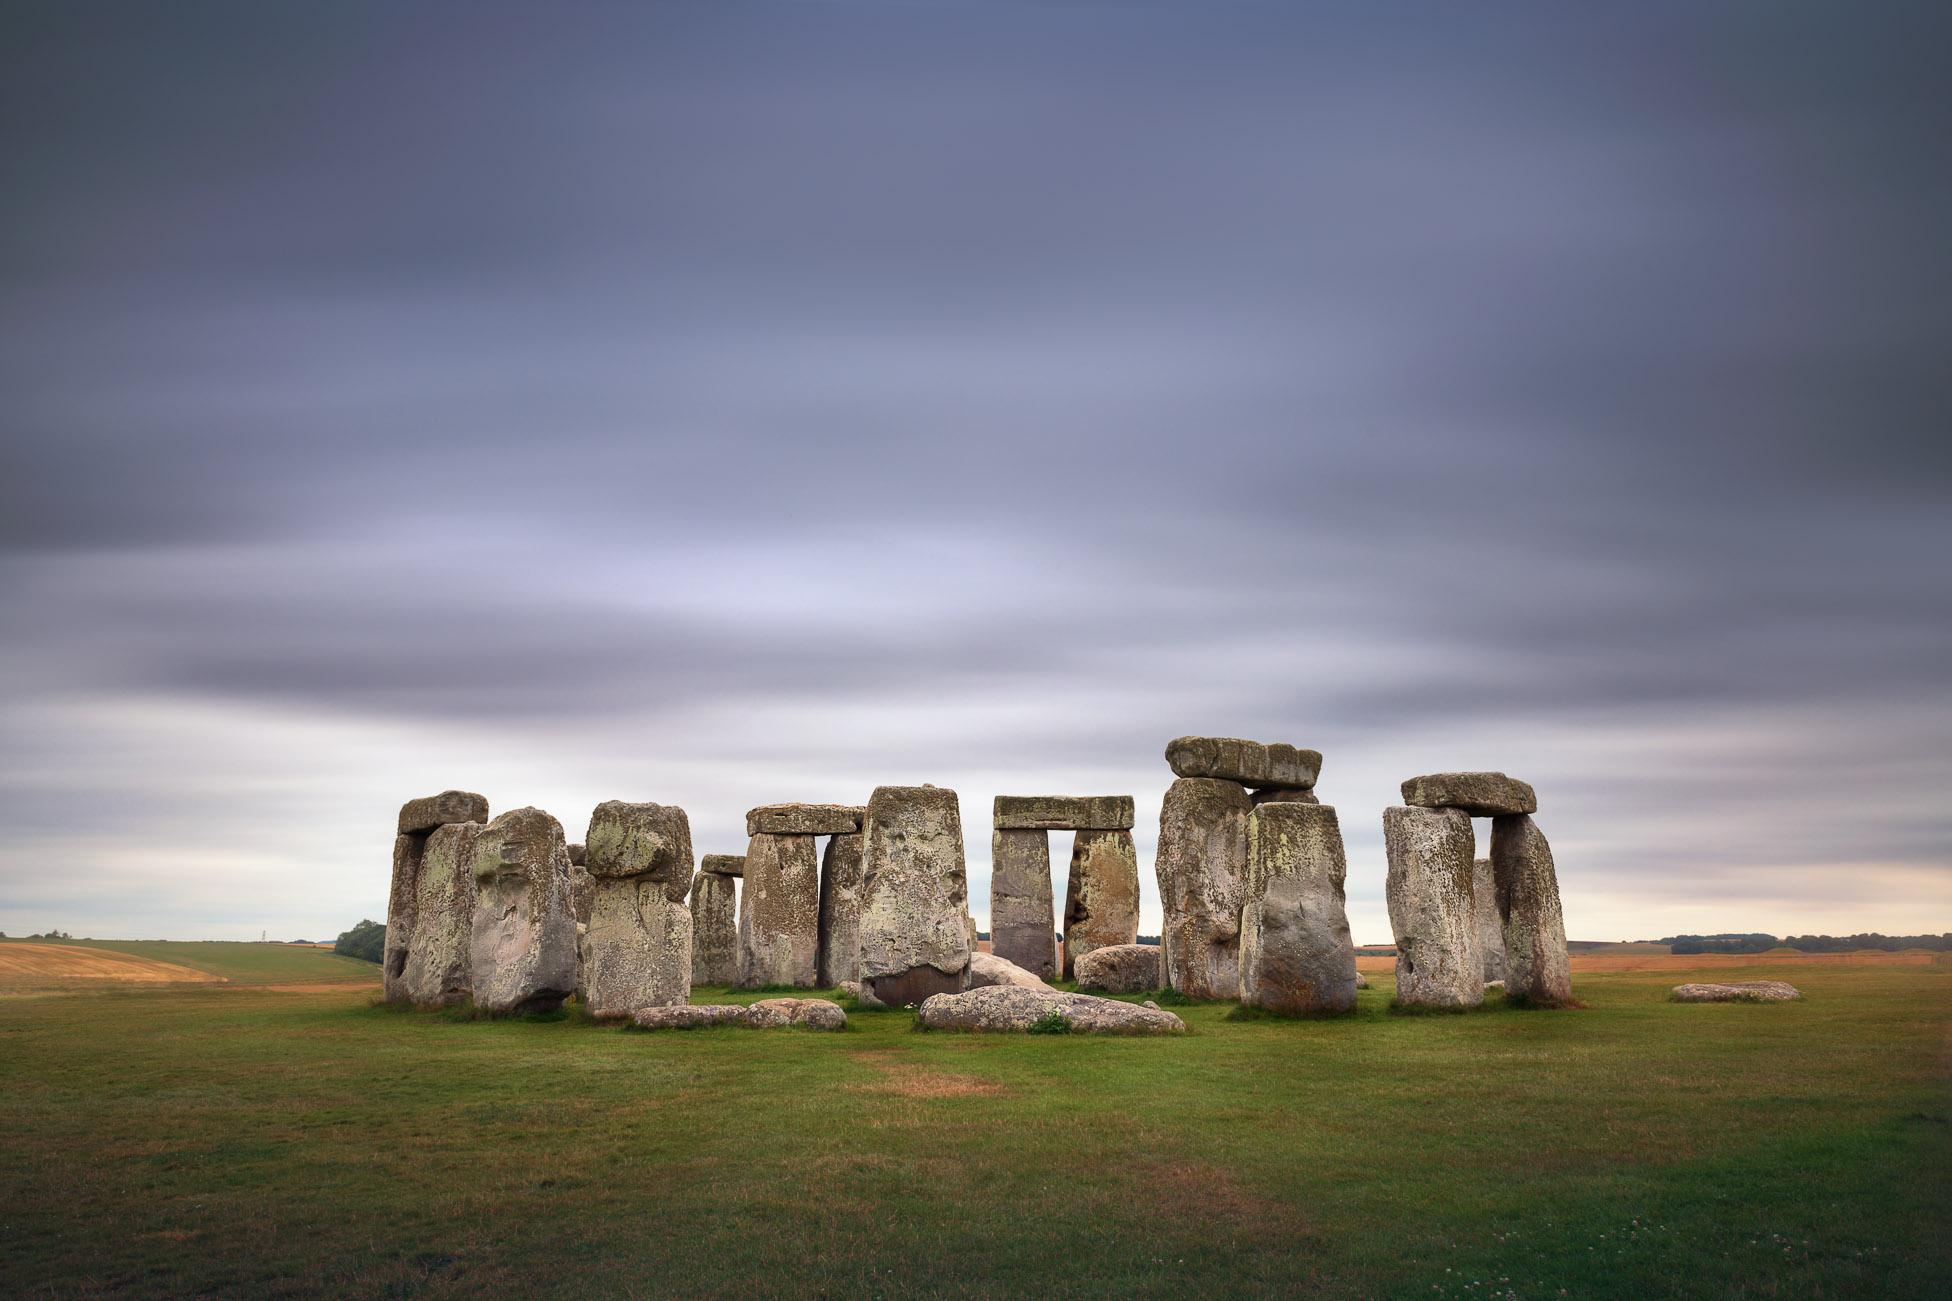 Stonehenge Monument in the Morning, Wiltshire, United Kingdom